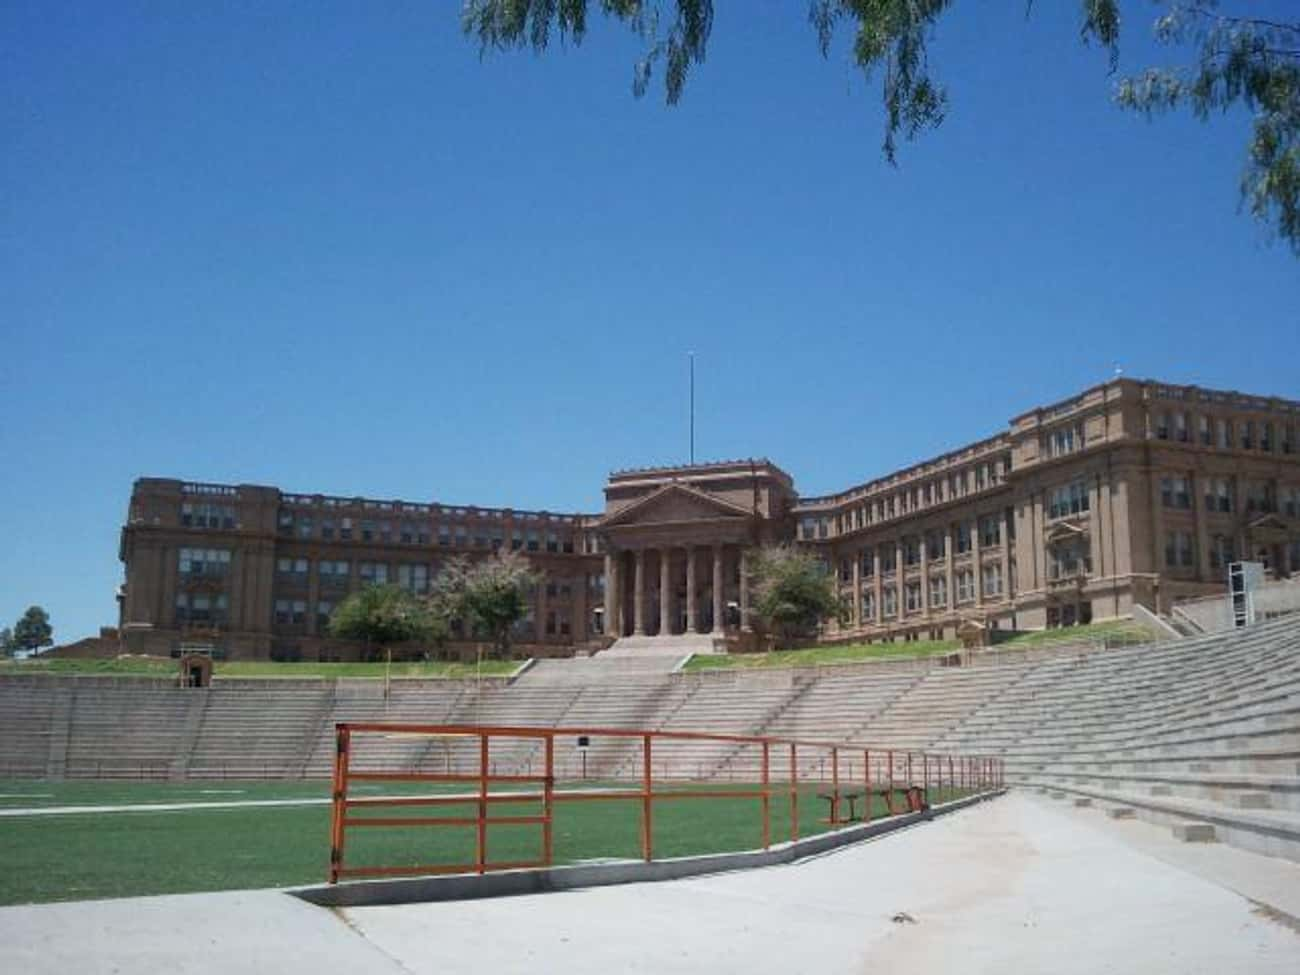 El Paso High School - El Paso is listed (or ranked) 3 on the list The Weirdest And Most Haunted Places In Texas